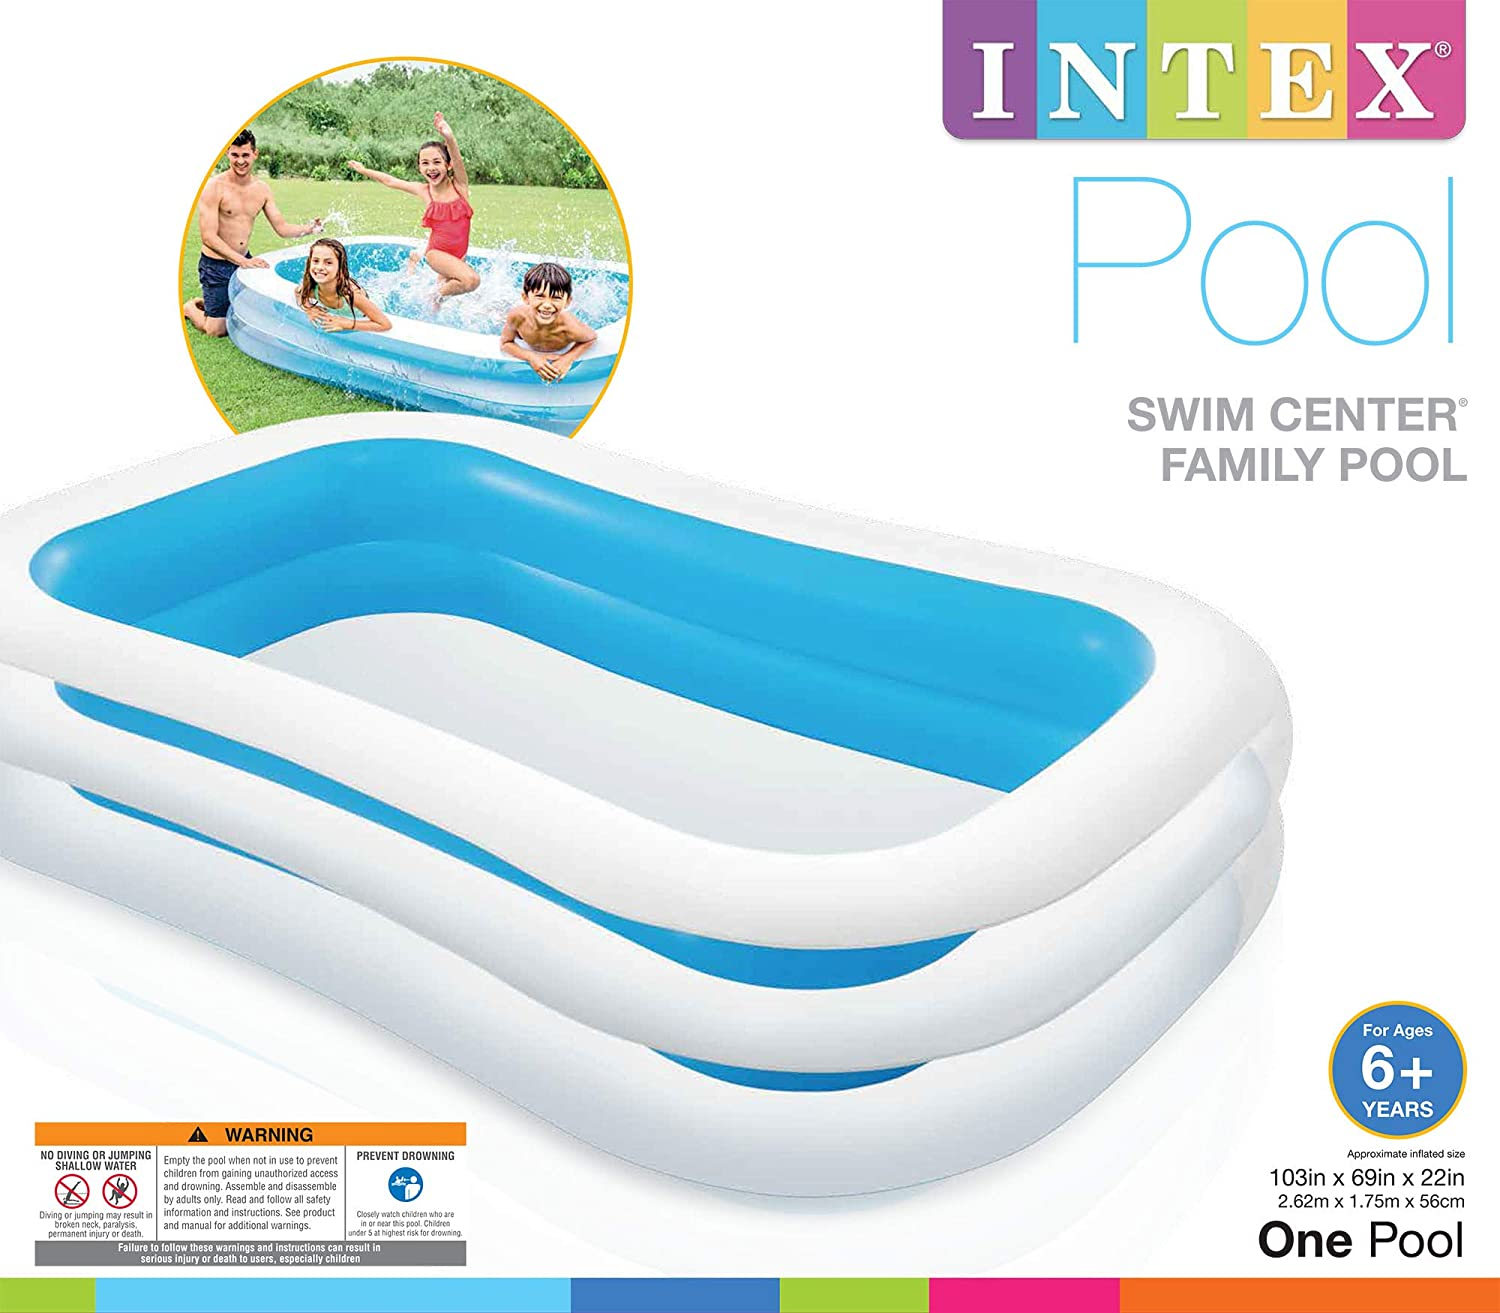 Intex 56483NP - Piscina hinchable rectangular 262 x 175 x 56 cm, 770 litros (Colores surtidos: azul o verde)